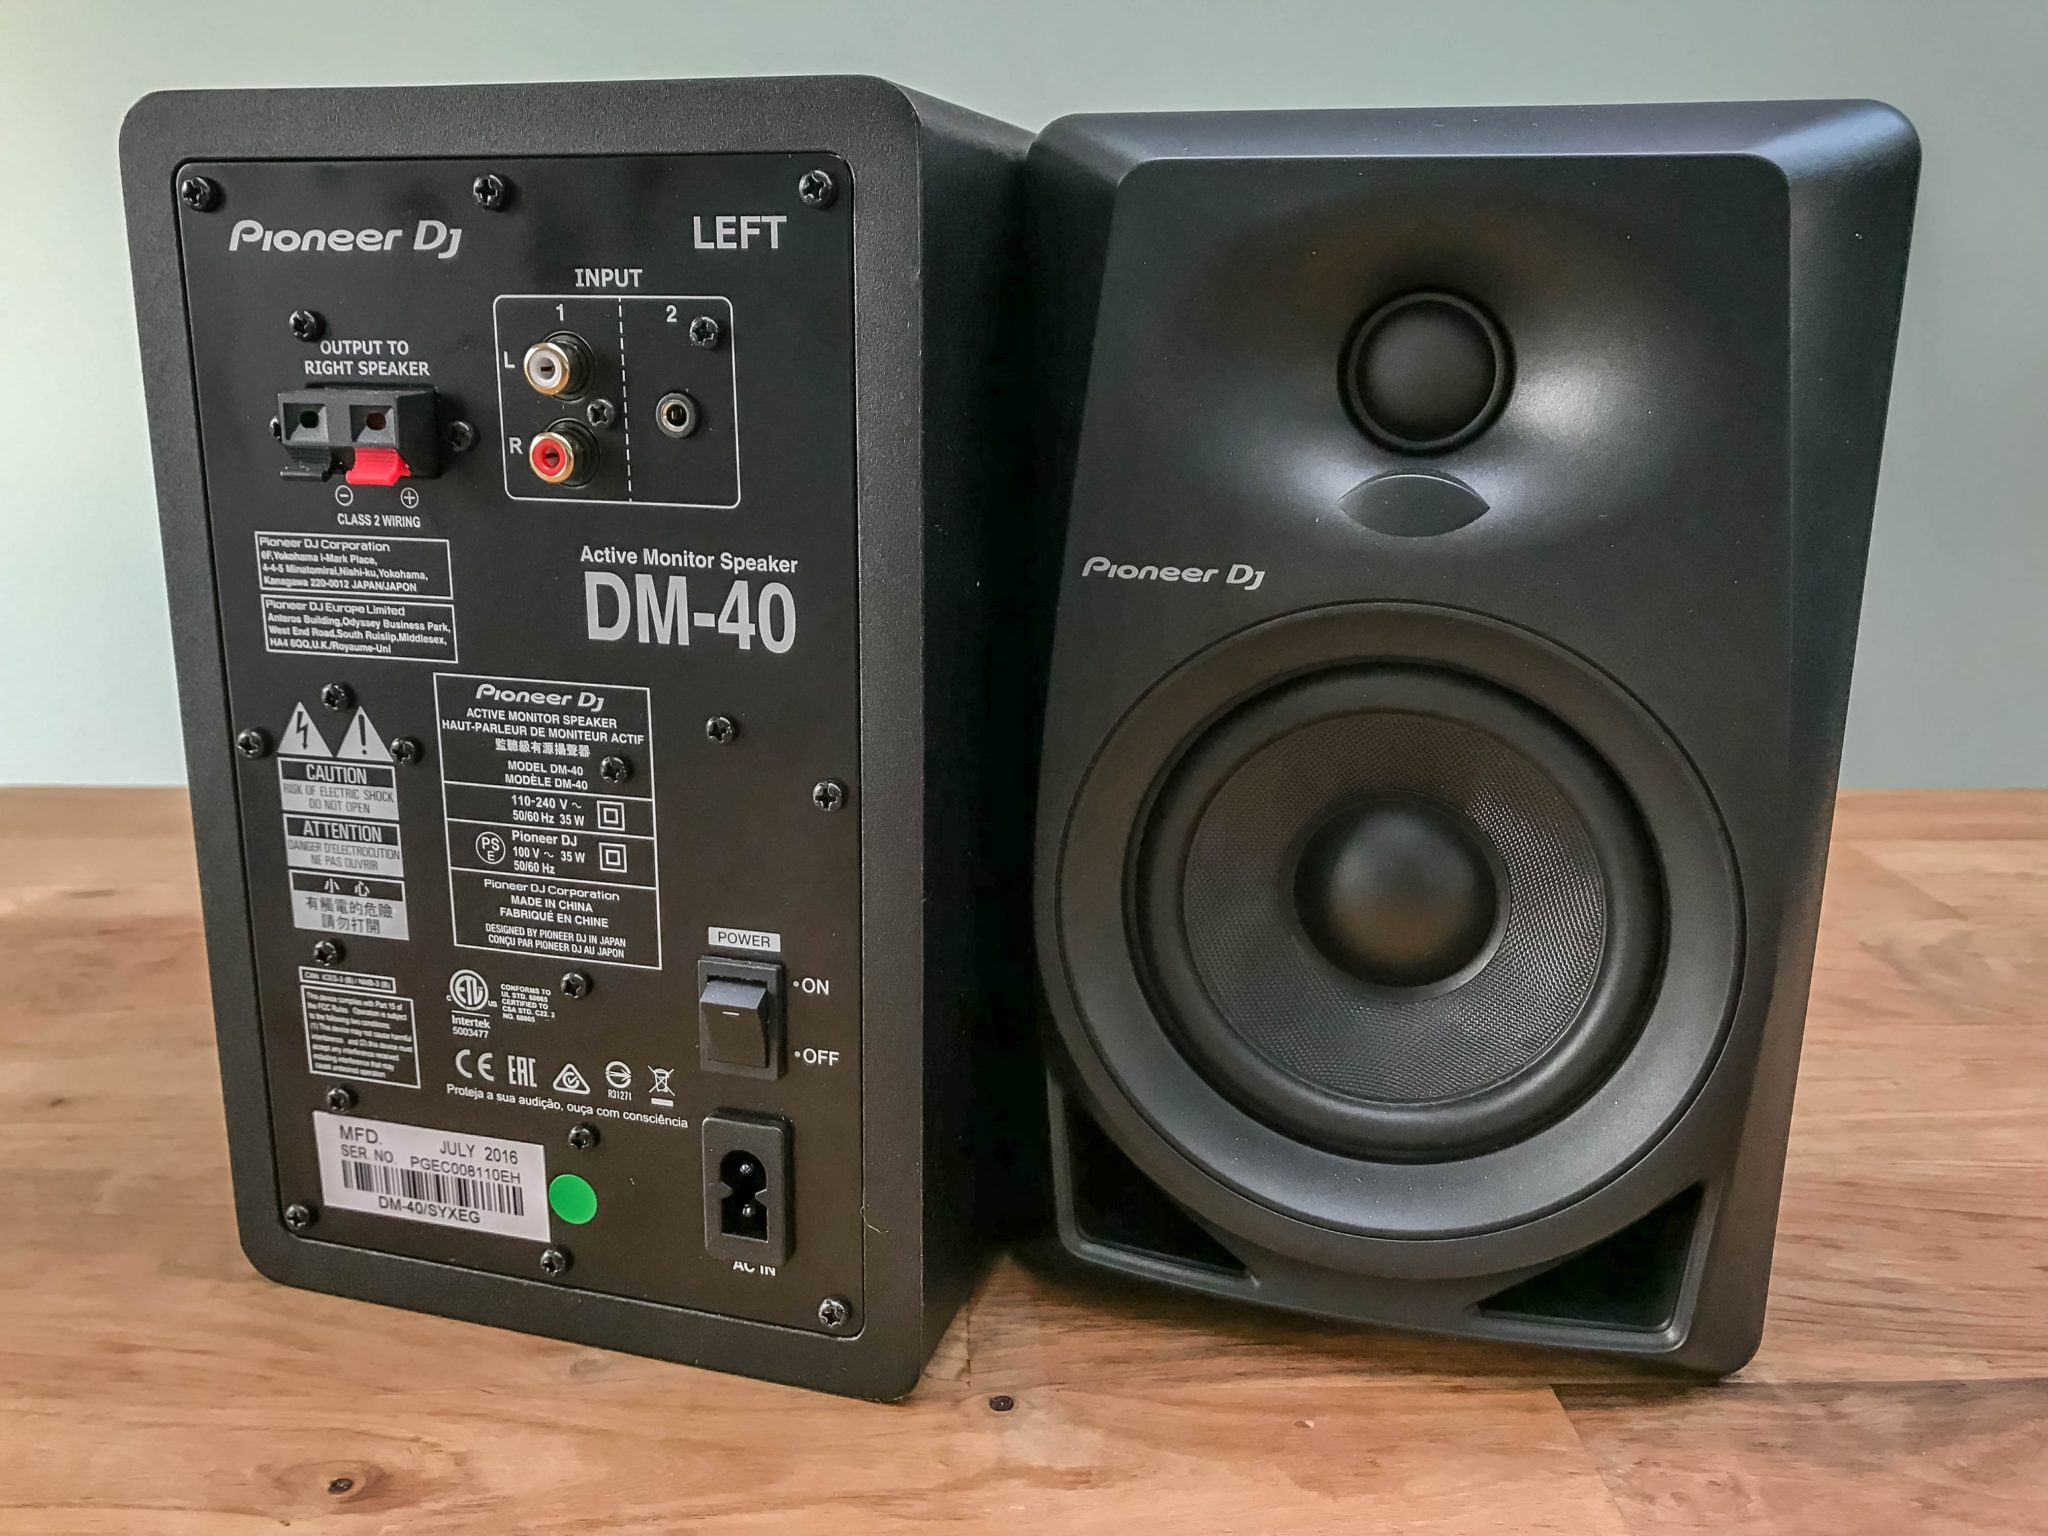 Onto the sound quality itself and I'm very very pleased with what I'm  hearing! Crisp, defined high's, rich mid's and punchy bass. The sound is  full, ...